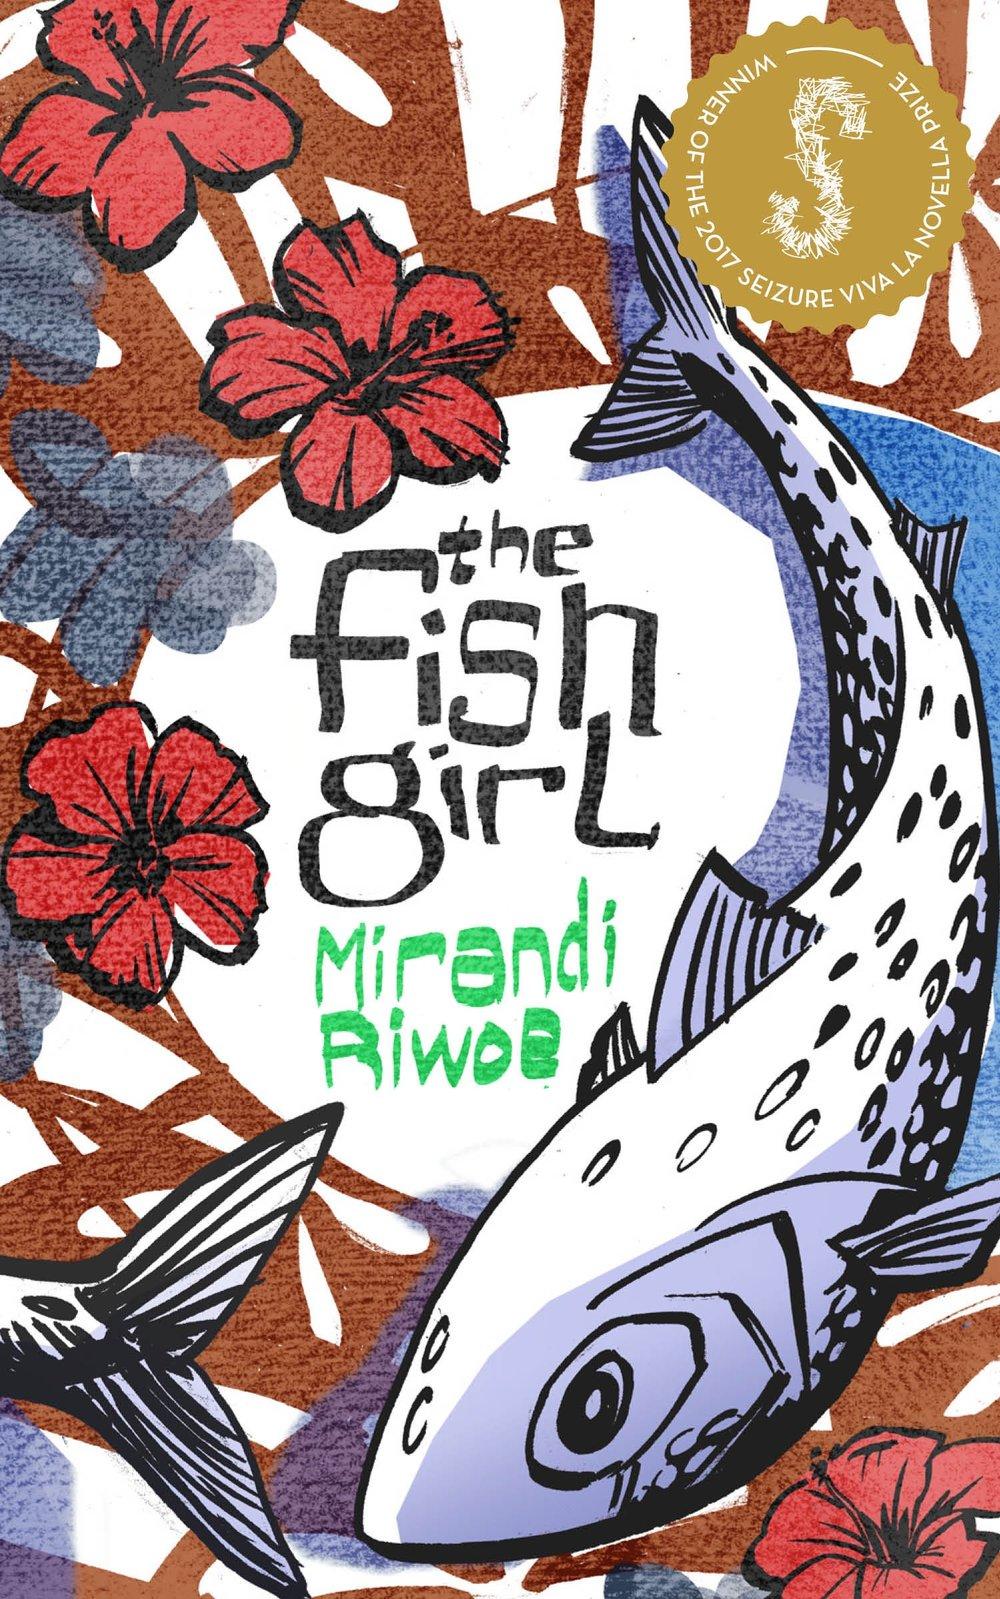 THE FISH GIRL – MIRANDI RIWOE - Sparked by the description of a 'Malay trollope' in W. Somerset Maugham's story, The Four Dutchmen, Mirandi Riwoe's novella, The Fish Girl tells of an Indonesian girl whose life is changed irrevocably when she moves from a small fishing village to work in the house of a Dutch merchant. There she finds both hardship and tenderness as her traditional past and colonial present collide.